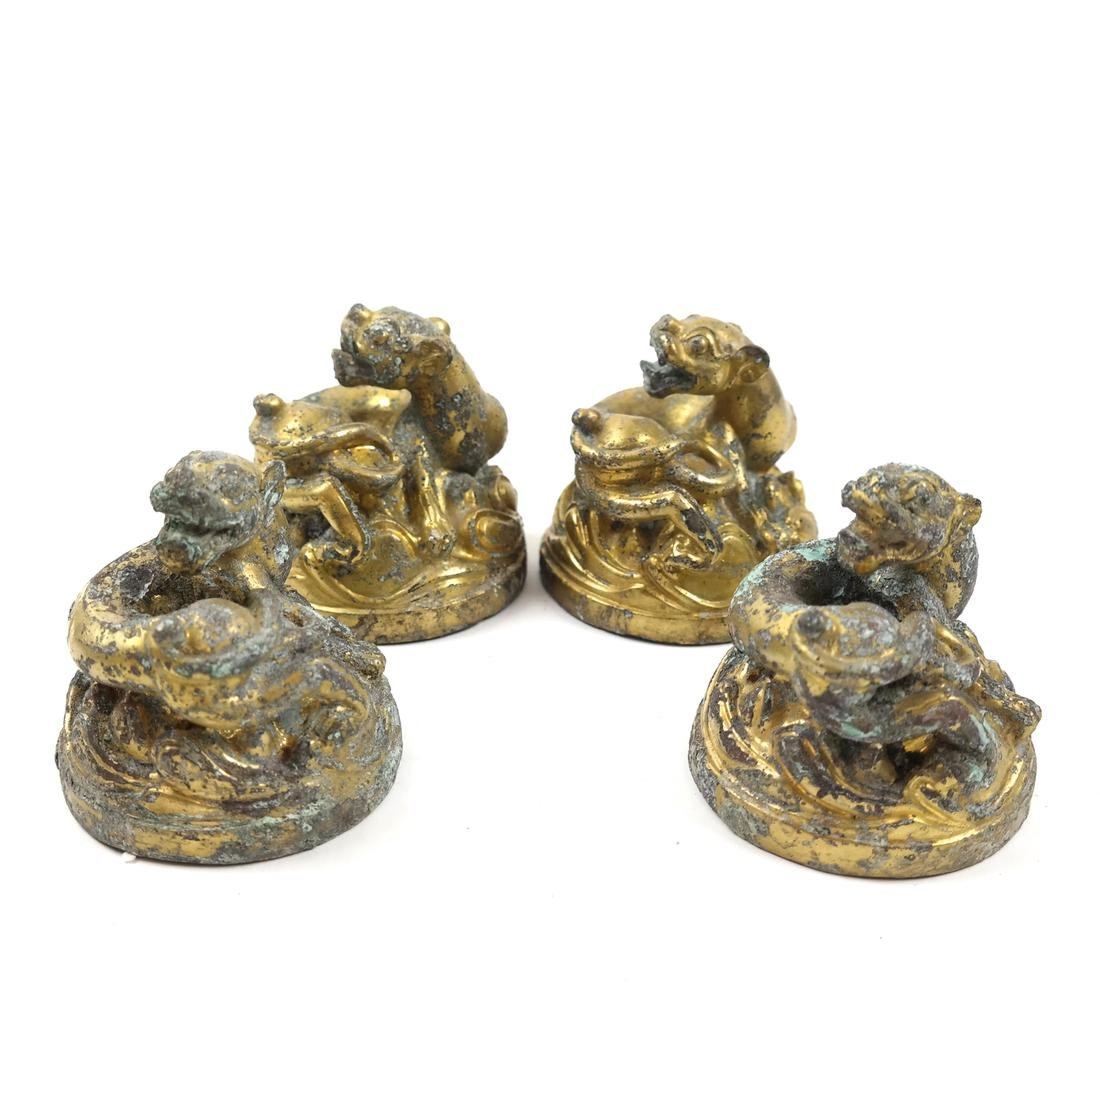 4 ASIAN GILT-BRONZE ANIMAL-FORM WEIGHTS